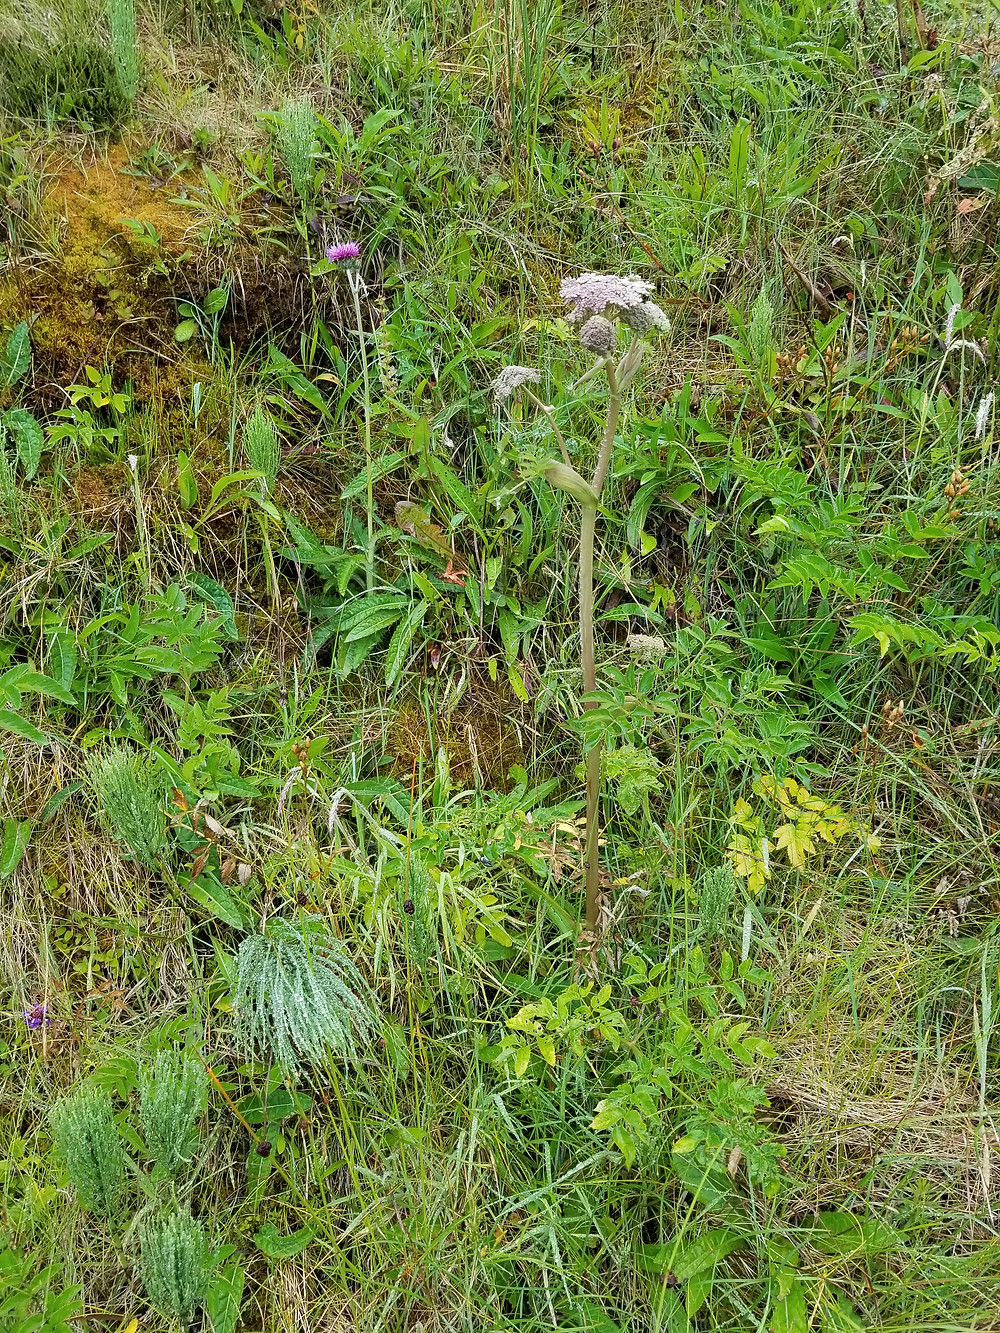 3.Doolin Pt roadside herbs: valerian, horsetail, plantain, dandelion, sedge grass and maybe some figwort about to bloom (above the valerian blossom).